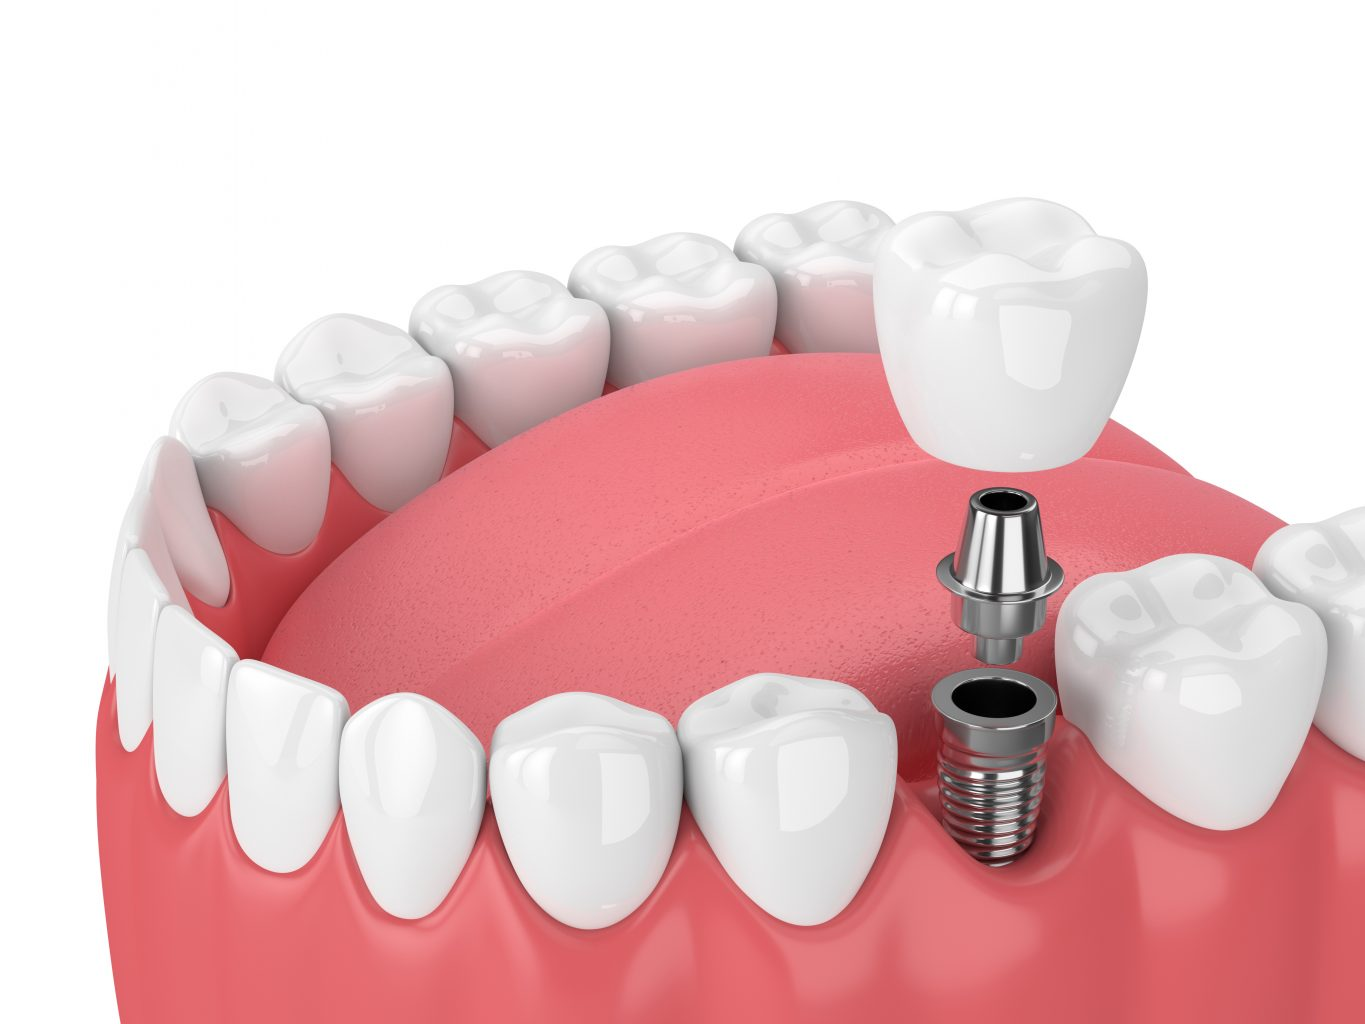 3d Render Of Jaw With Teeth And Dental Molar Implant